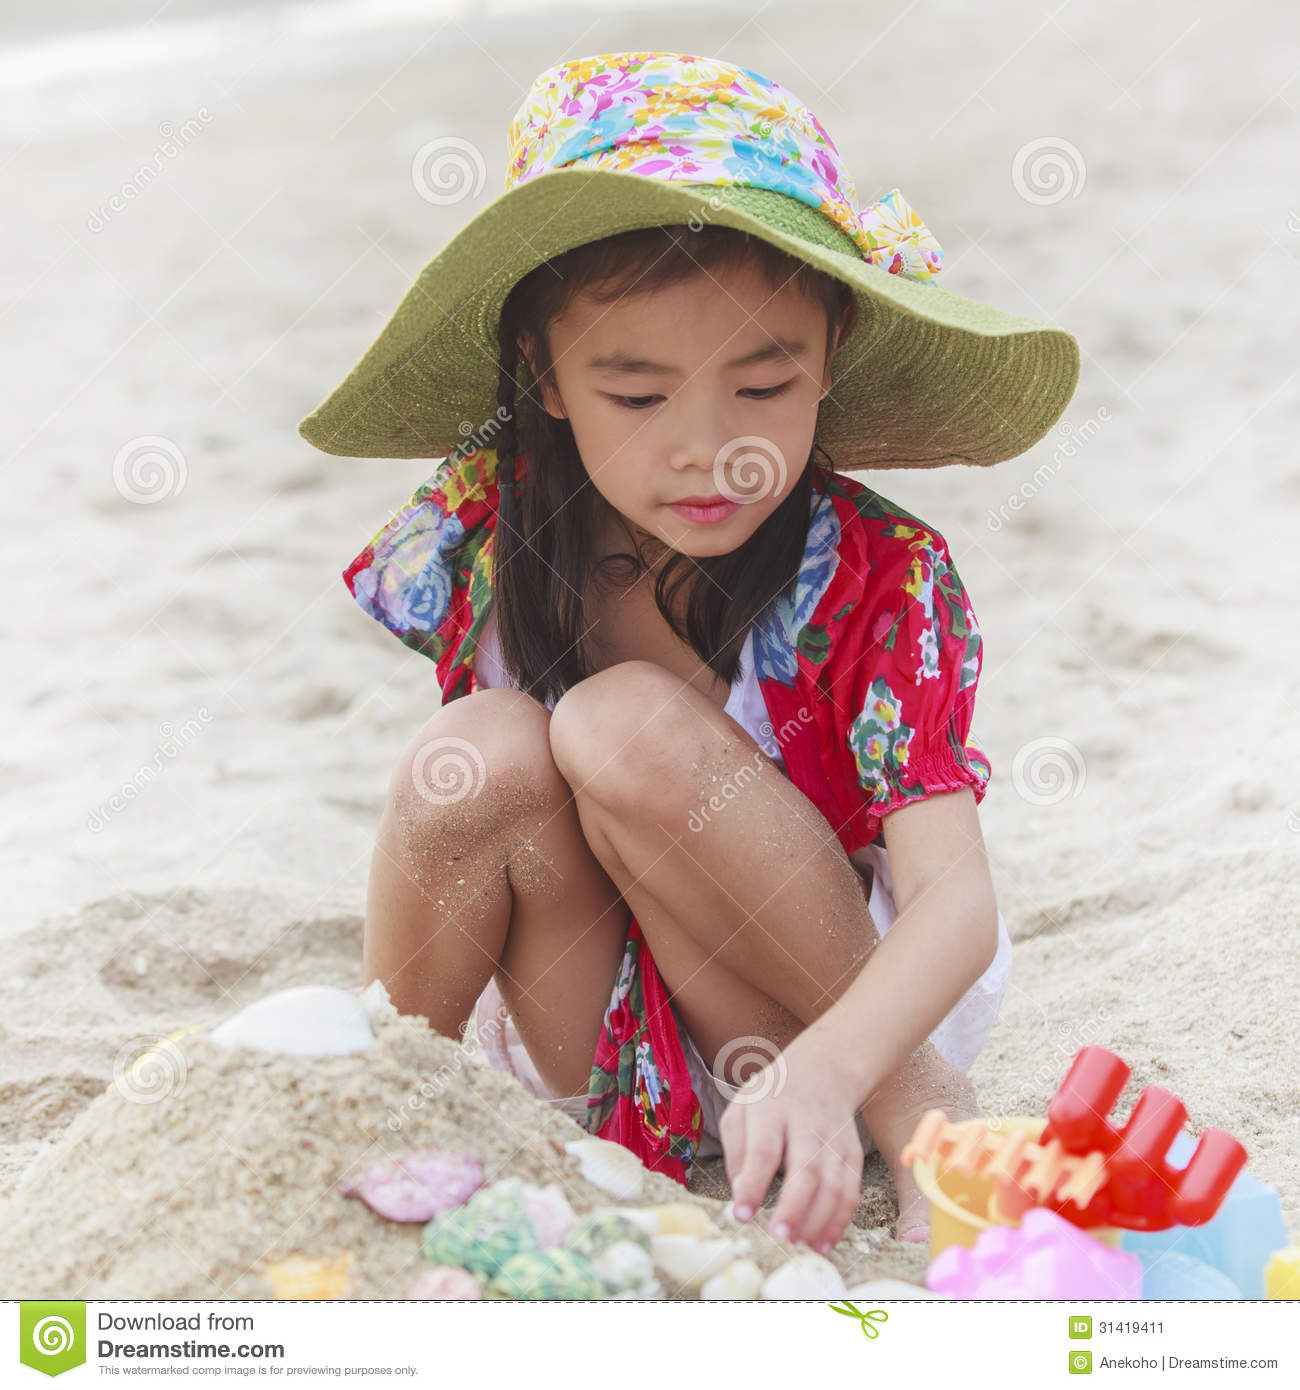 Beach Toys For Girls : Girl is playing with her toys on the beach stock image